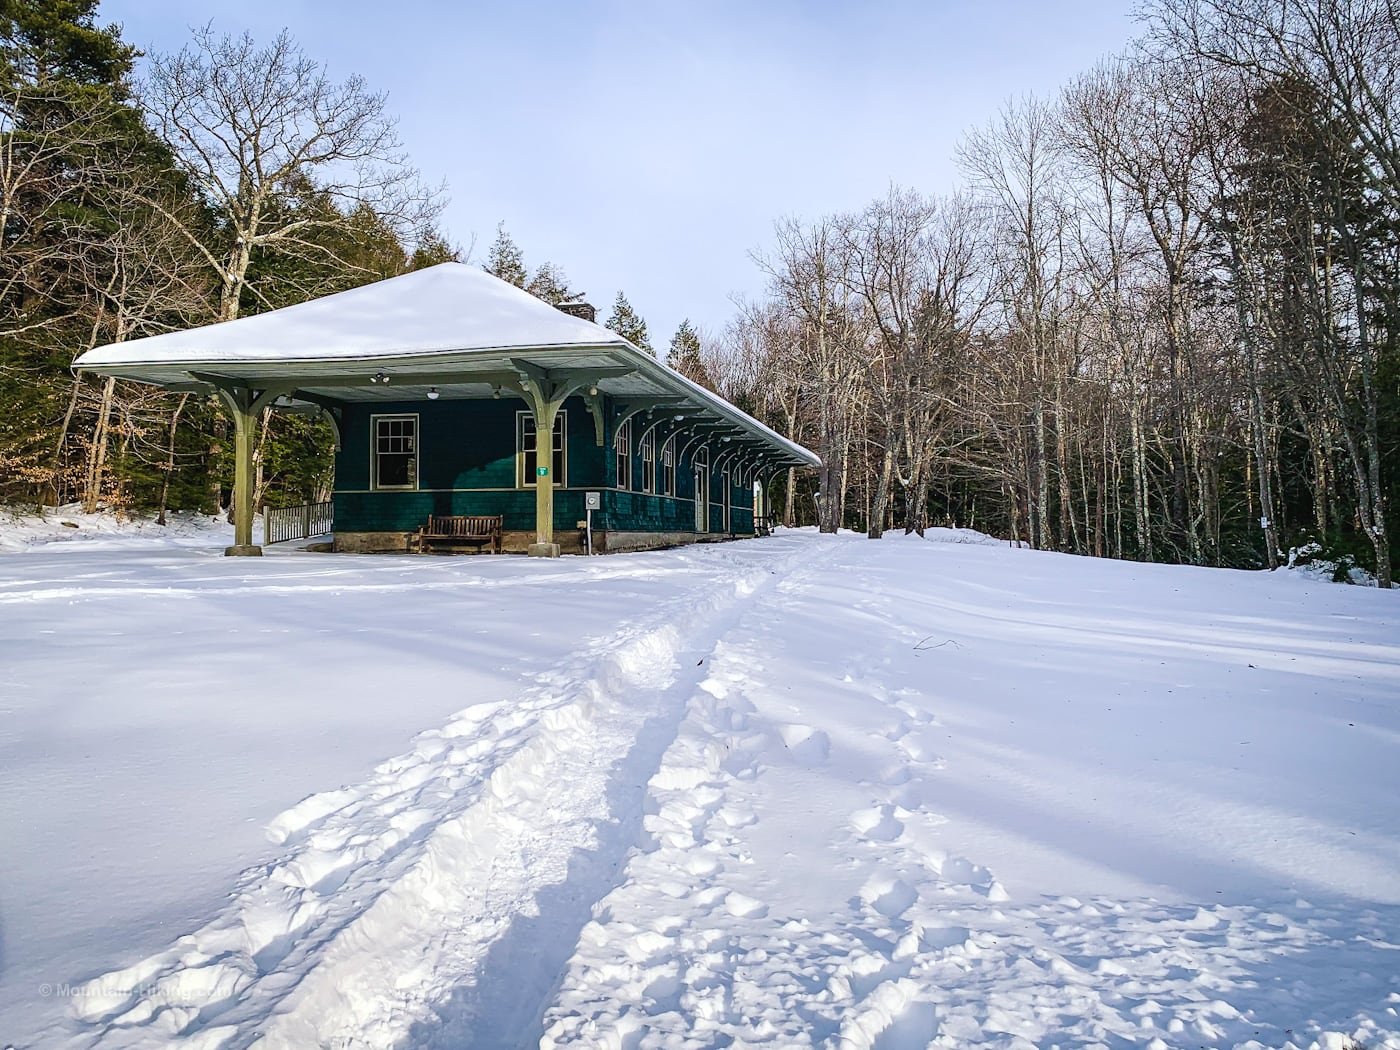 Mountain Top Historical Society building surrounded by snow